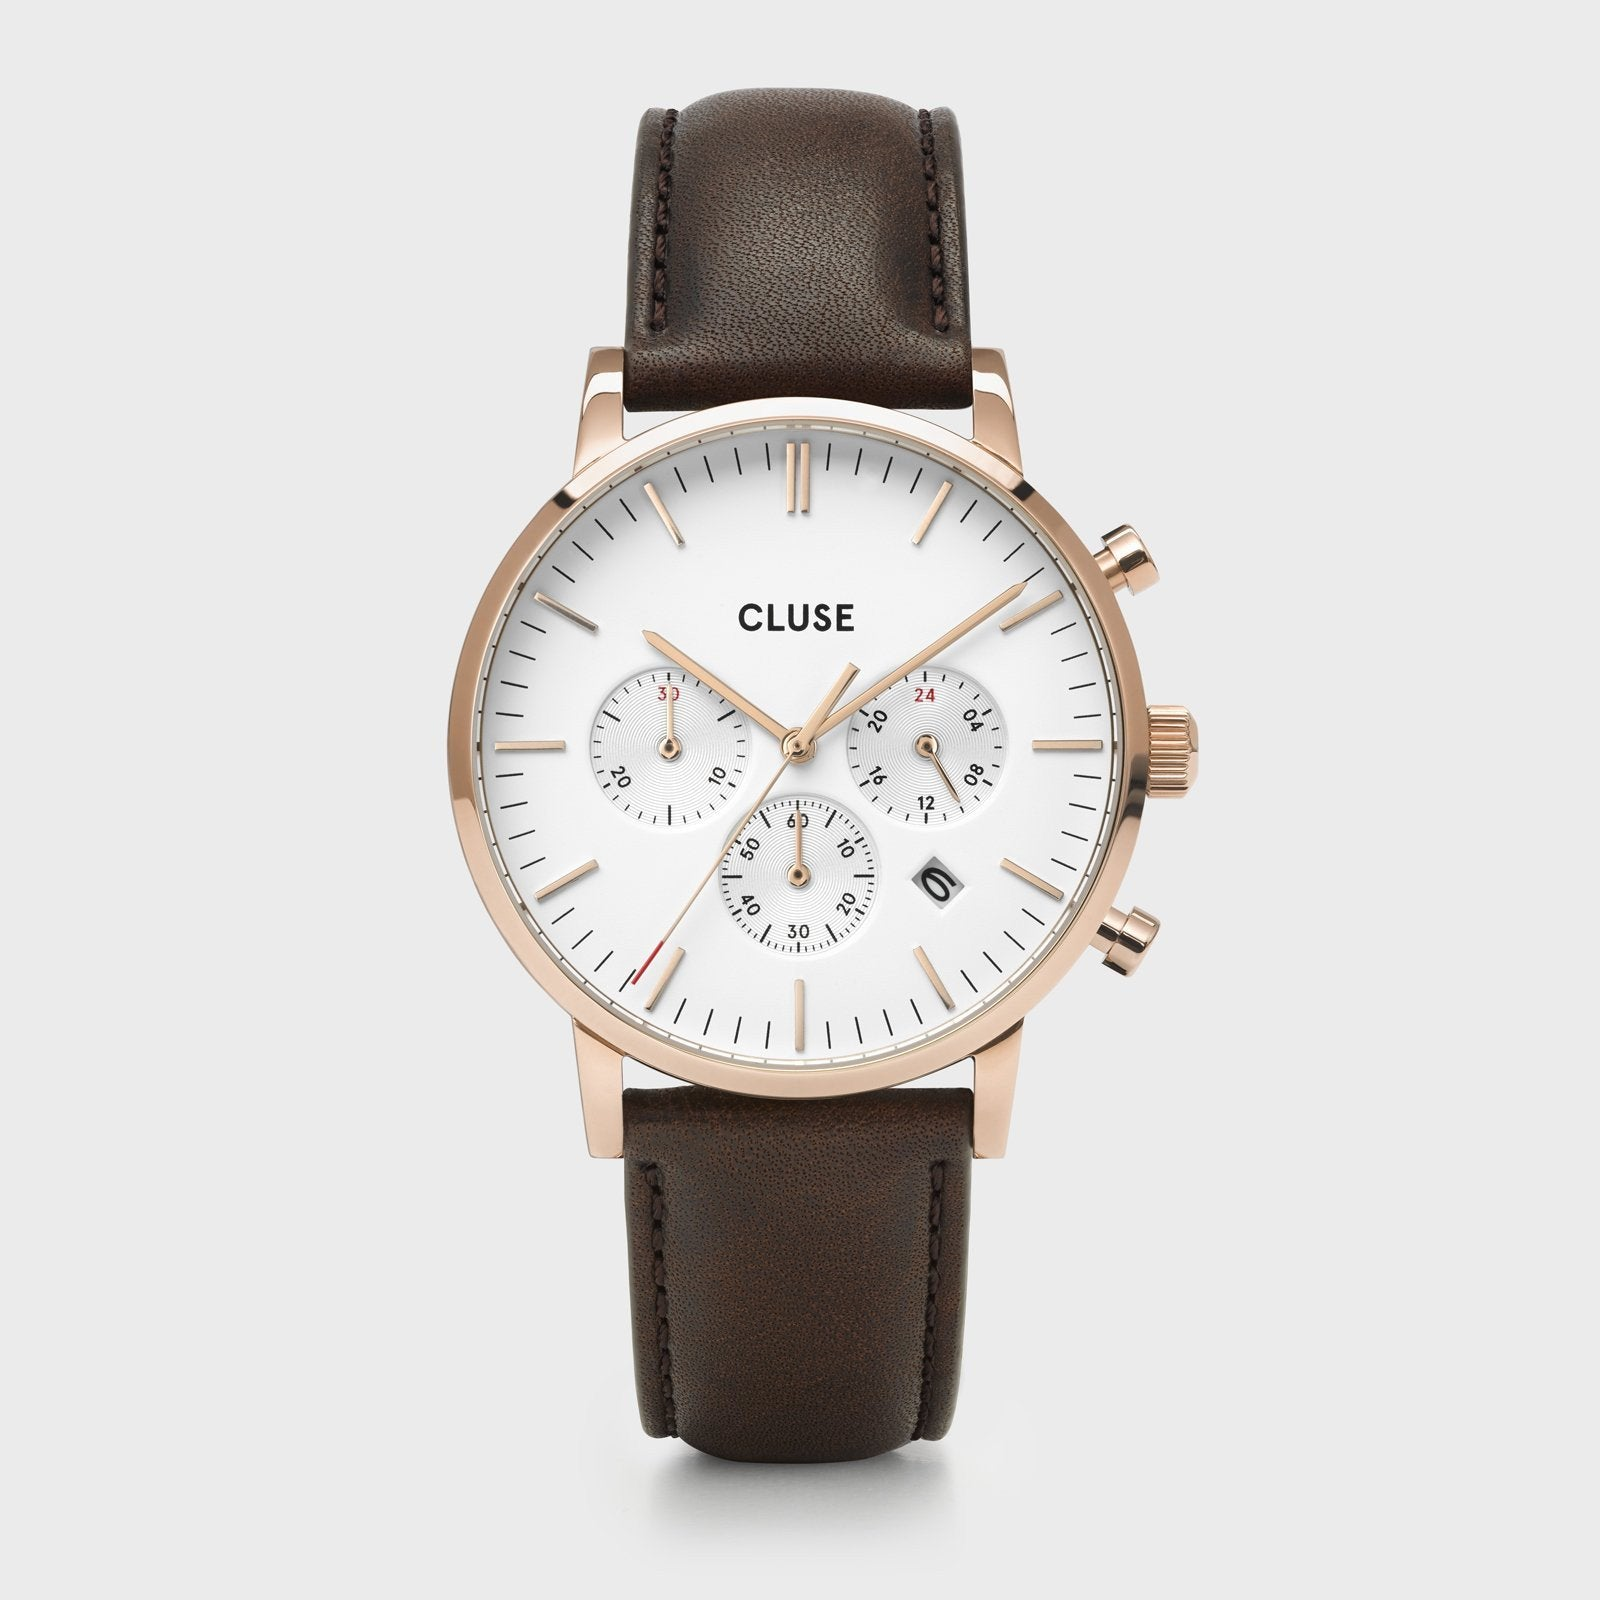 CLUSE Aravis chrono leather rose gold white/dark brown CW0101502002 - Watch